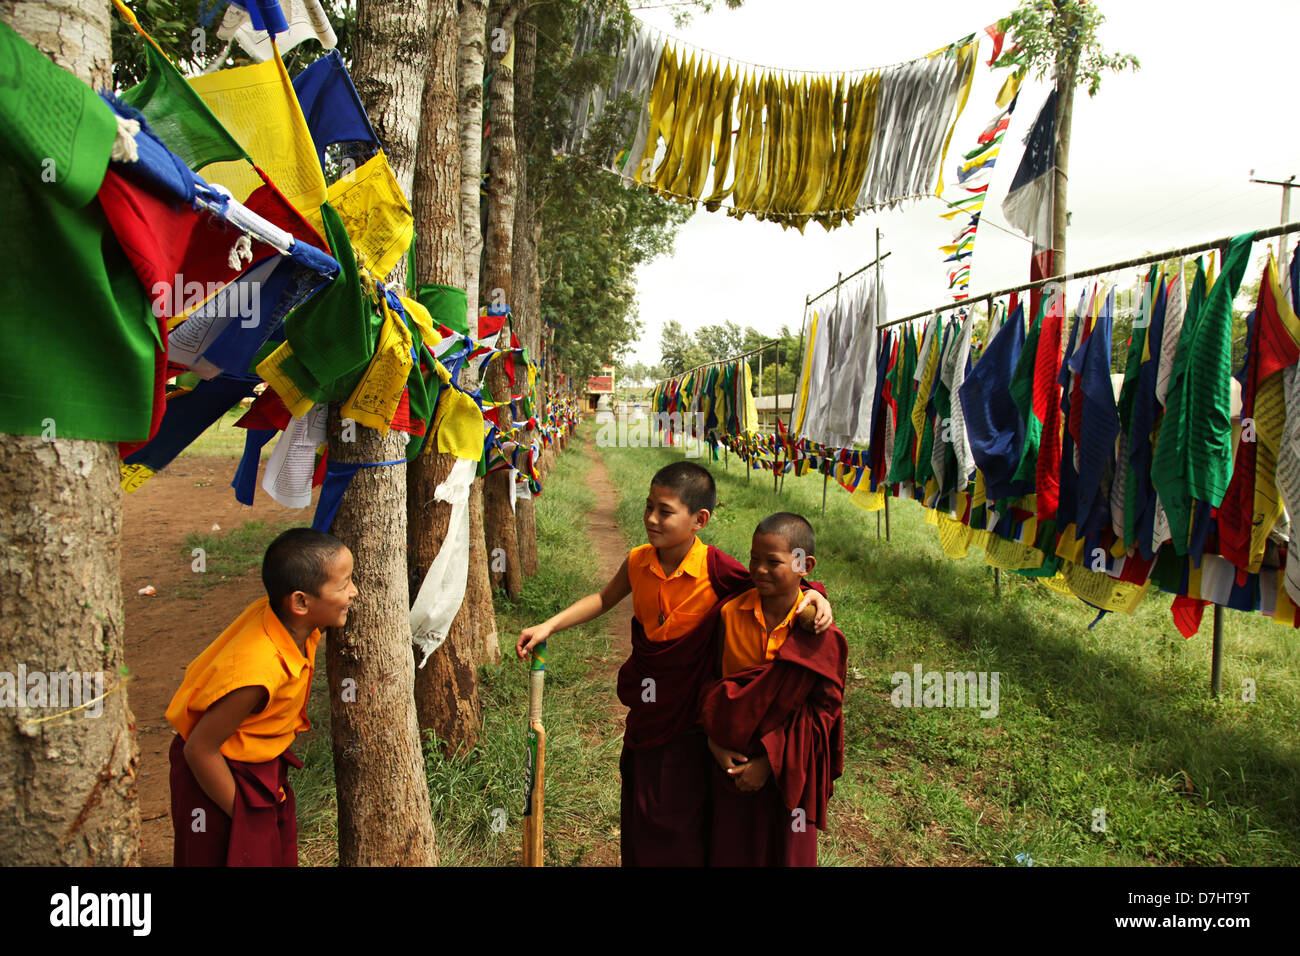 Child monks having a fun time in Bylakuppe, India. - Stock Image